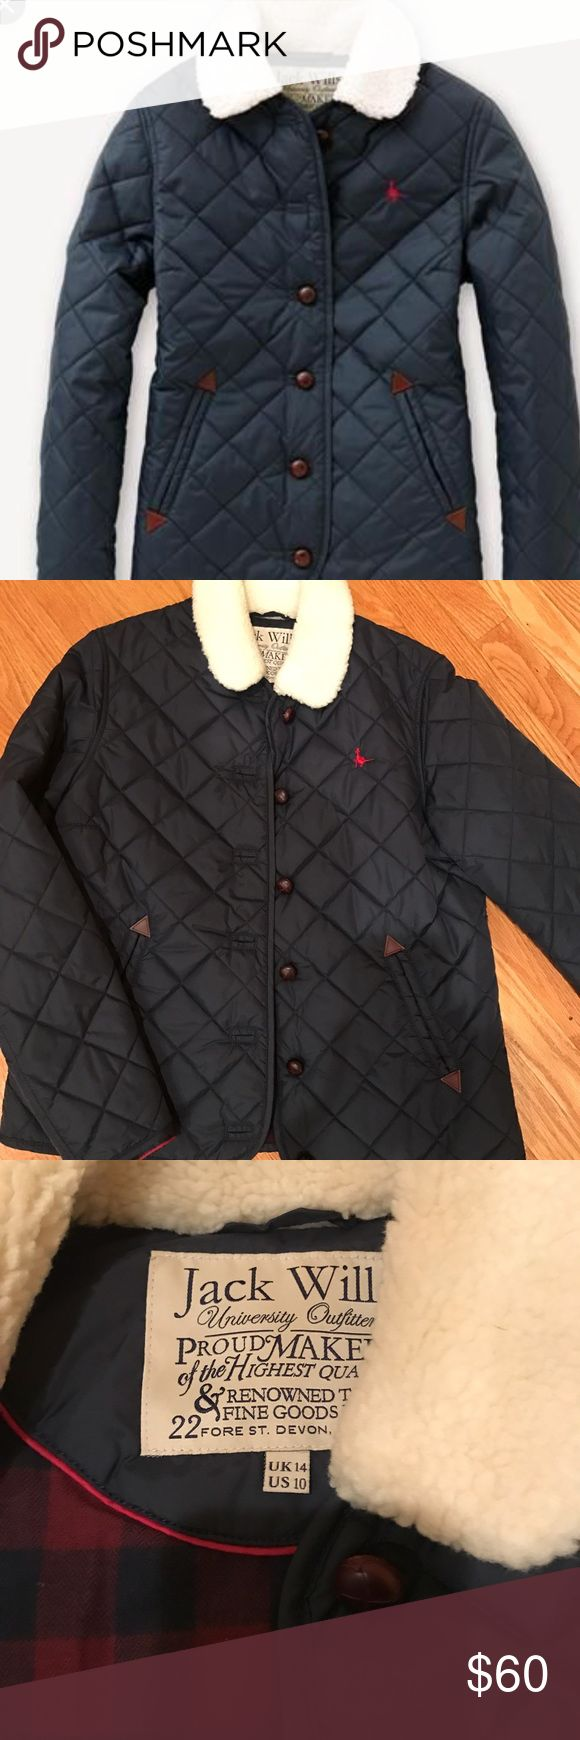 """Jack Wills Navy Blue Quilted Coat BRAND NEW NEVER WORN. Jack Wills Quilted Jacket/Coat. Red and navy blue plaid interior. 2 outside pockets and one interior pocket. Brown buttons. Size US 14. But fits more like a woman's 6or 8. (Women's Medium) I am 5'3"""" 130 lbs with a 34"""" bust and it is just a tad big on me. Jack Wills Jackets & Coats"""